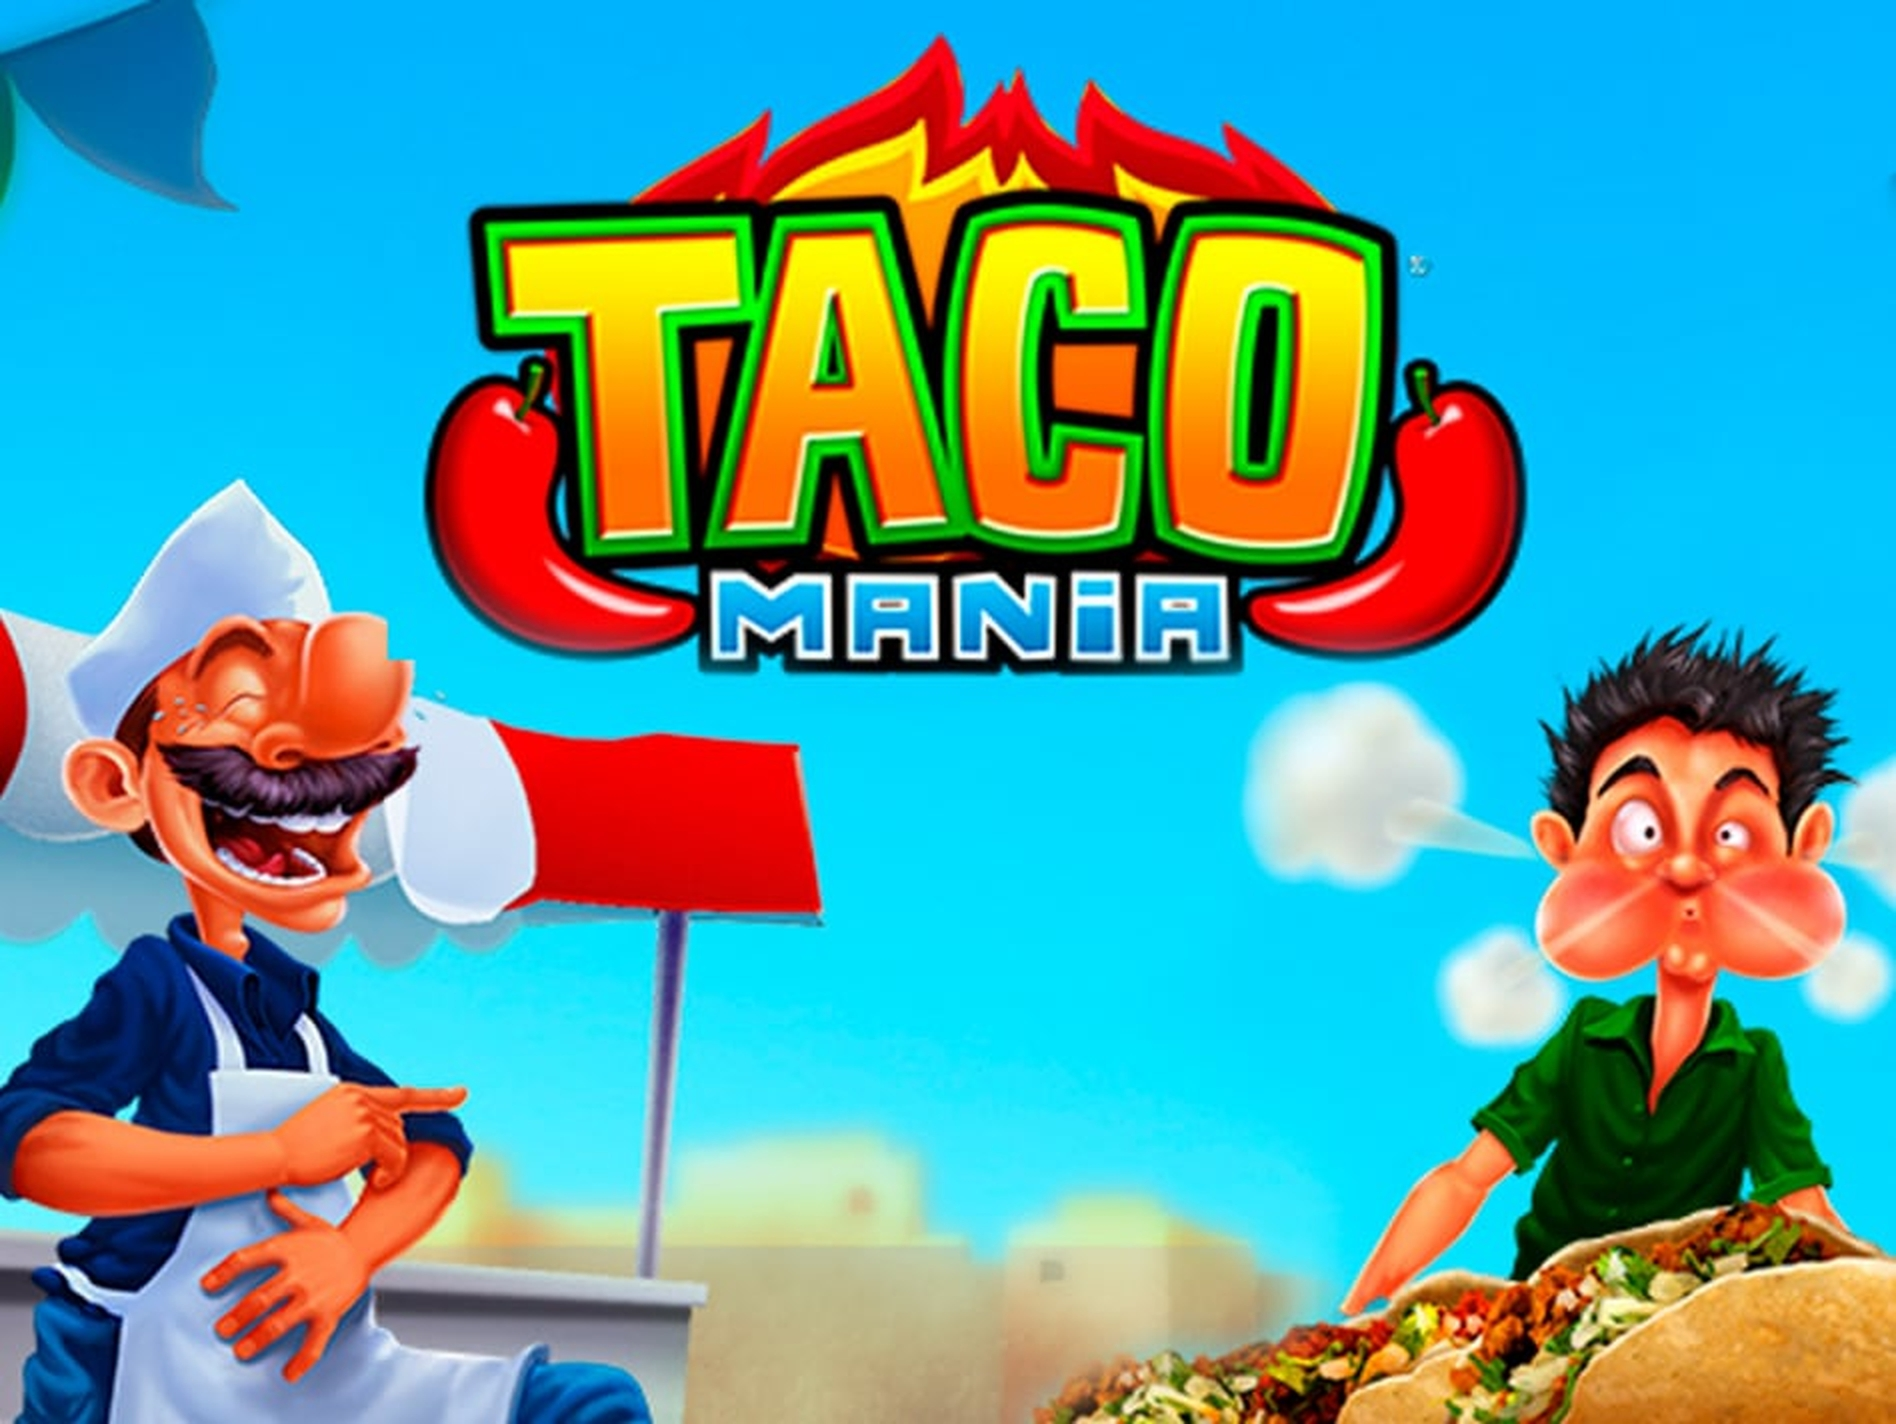 The Taco mania Online Slot Demo Game by Zitro